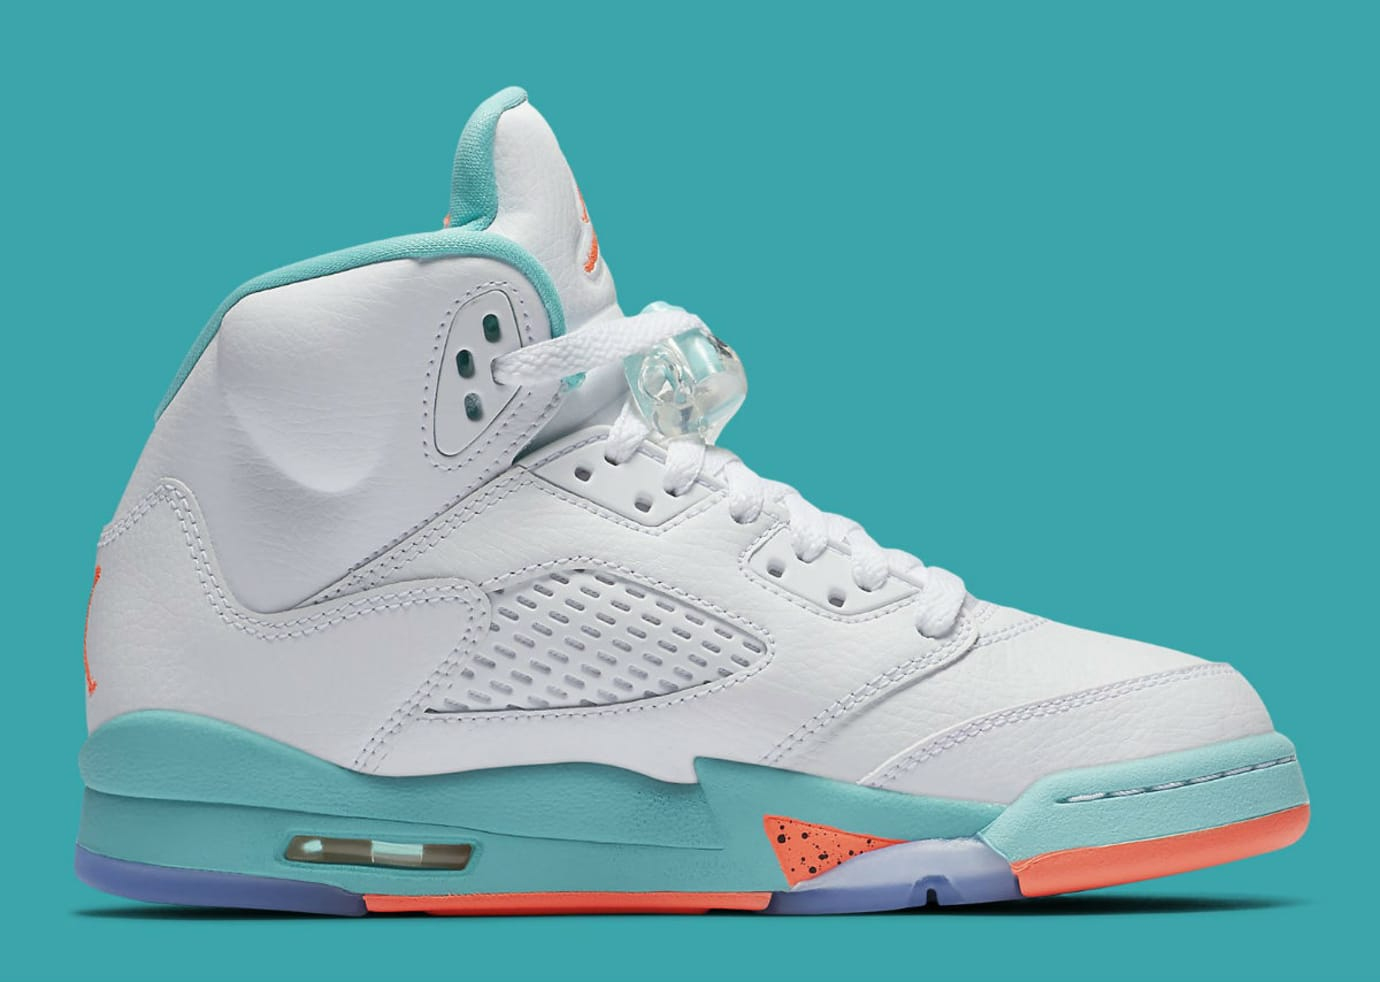 size 40 4dc4f 830a5 Image via Nike Air Jordan 5 V GS White Crimson Pulse Light Aqua Release  Date 440892-100 Medial